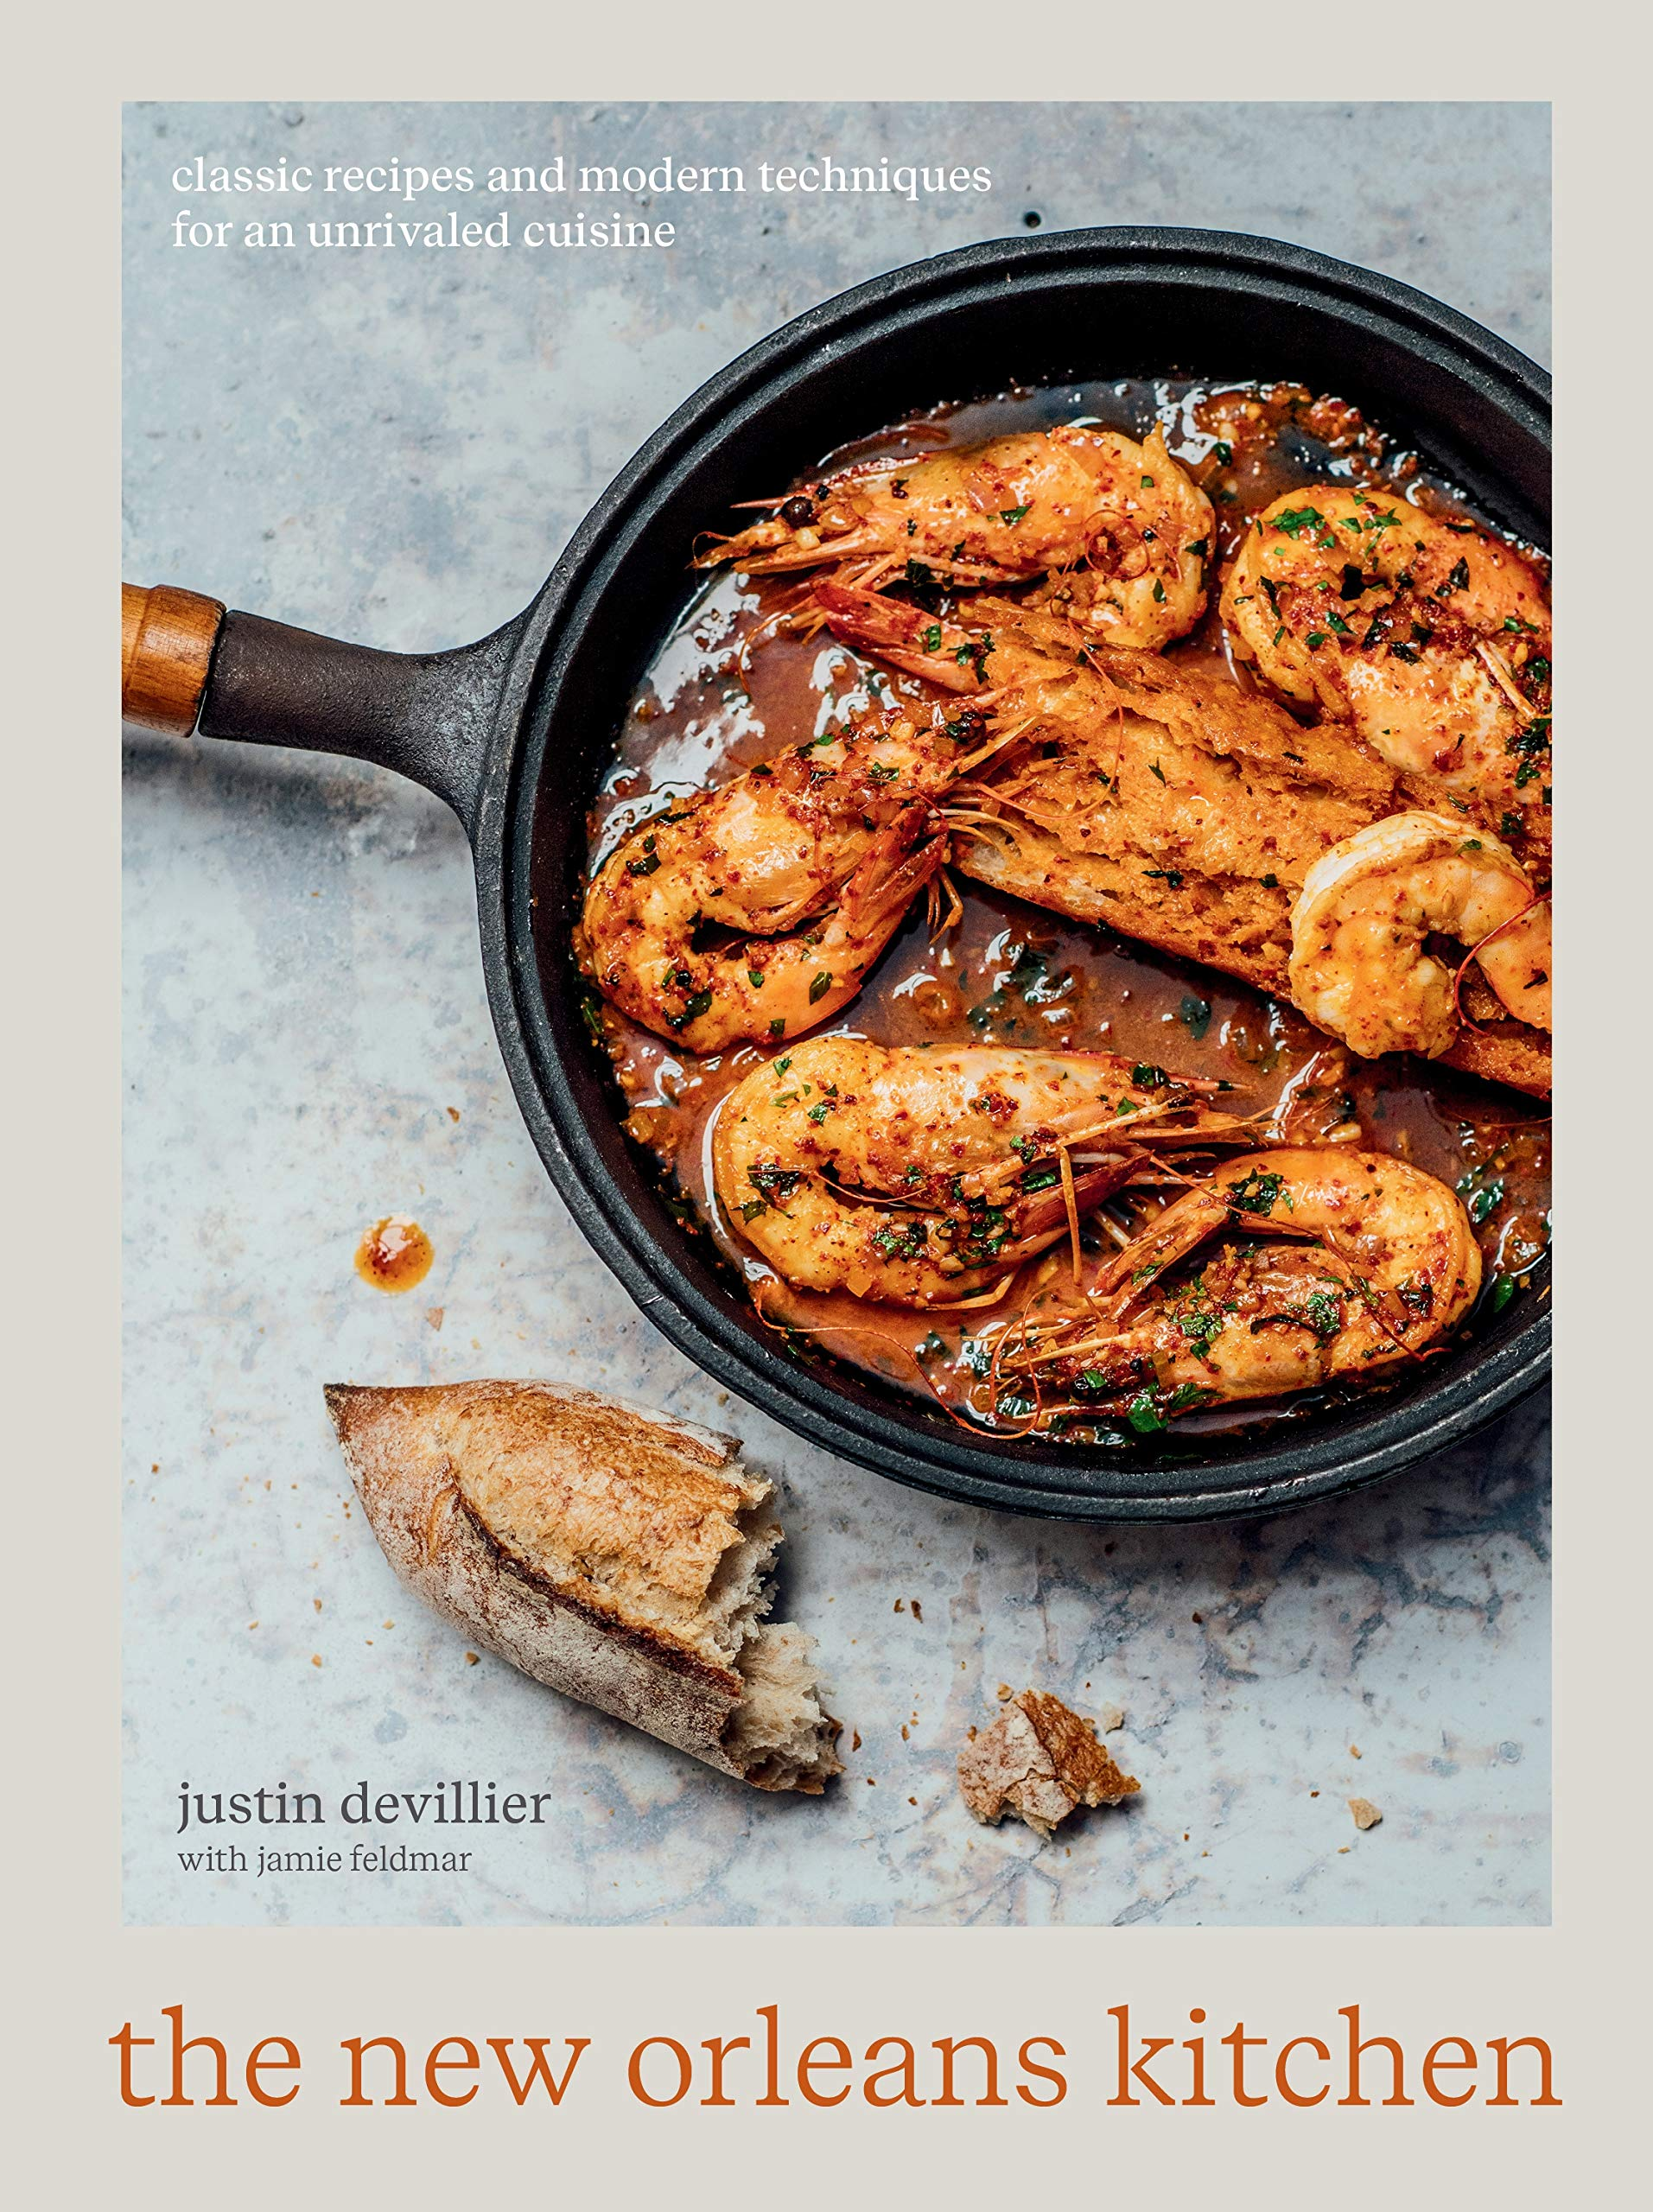 The Best Southern cookbooks cover images from Amazon